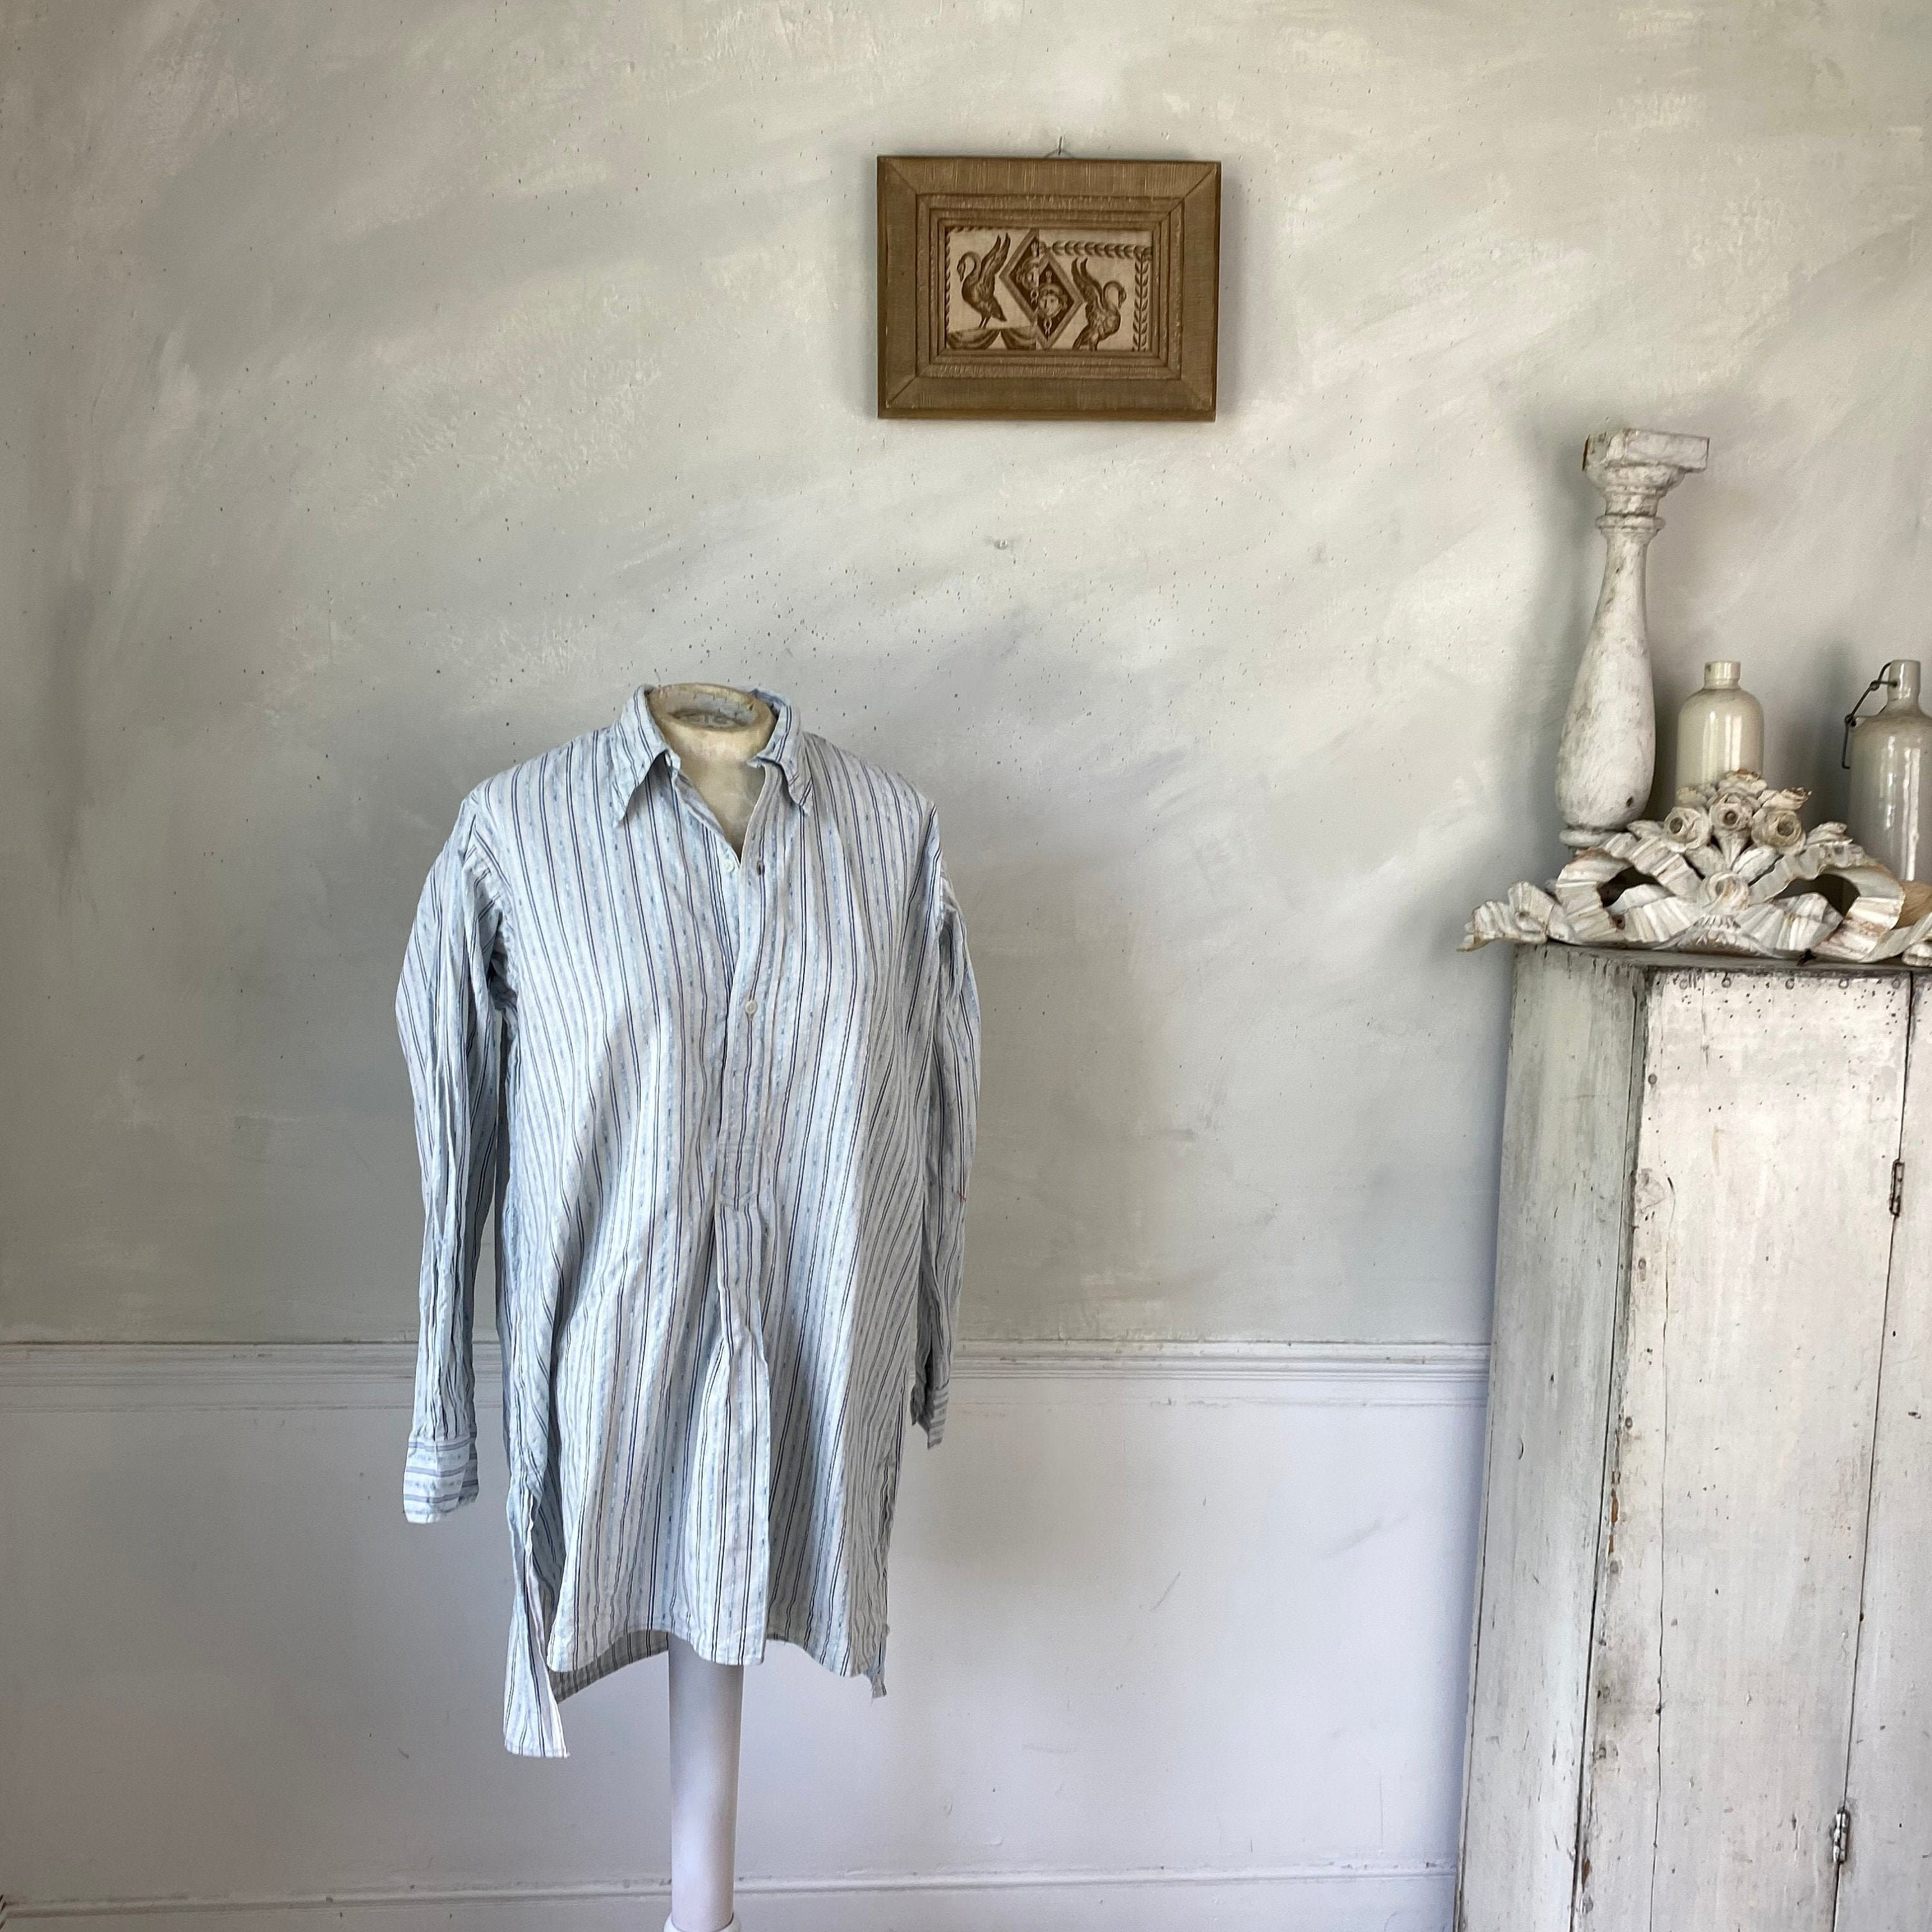 1940s Men's Shirts, Sweaters, Vests striped Patterned Blue Cotton Mens Vintage Shirt Or Tunic Soft White Circa 1930S-40S French Workwear Work Wear $155.00 AT vintagedancer.com